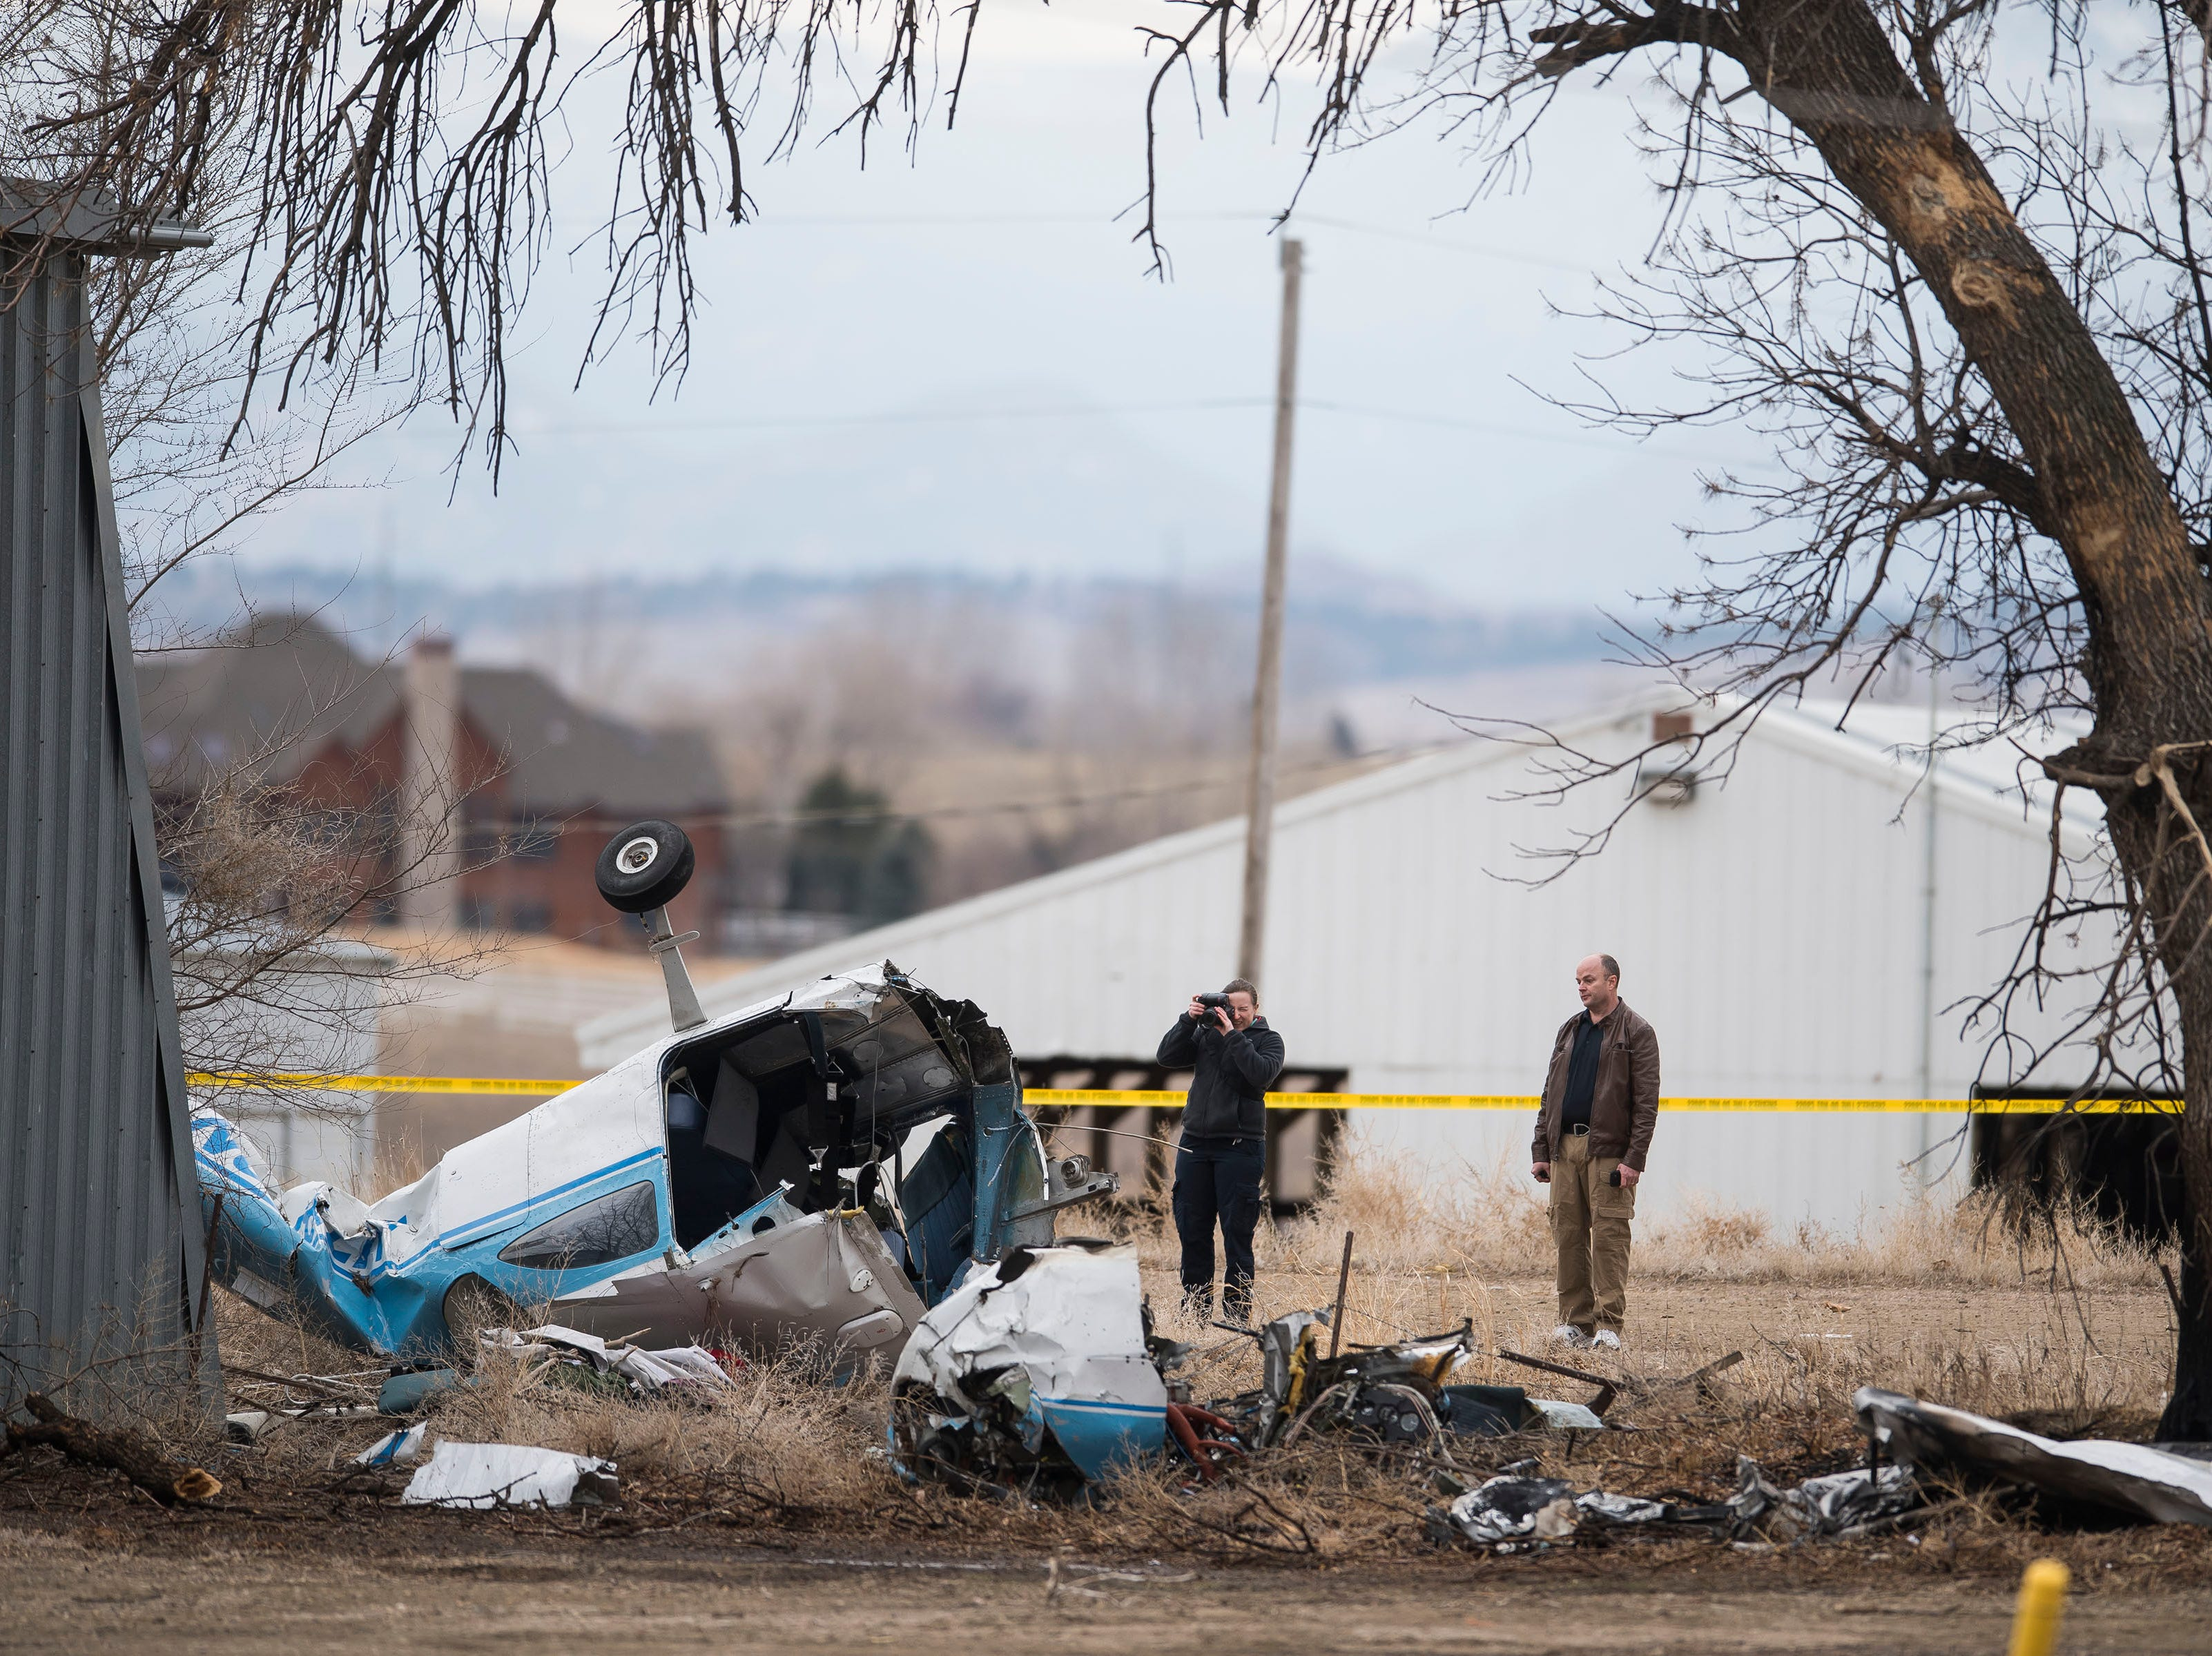 Sheriff 's department investigators document the scene of a small plane crash that injured three people on board Saturday, March 23, 2019. The crash occurred just west of the Northern Colorado Regional Airport.